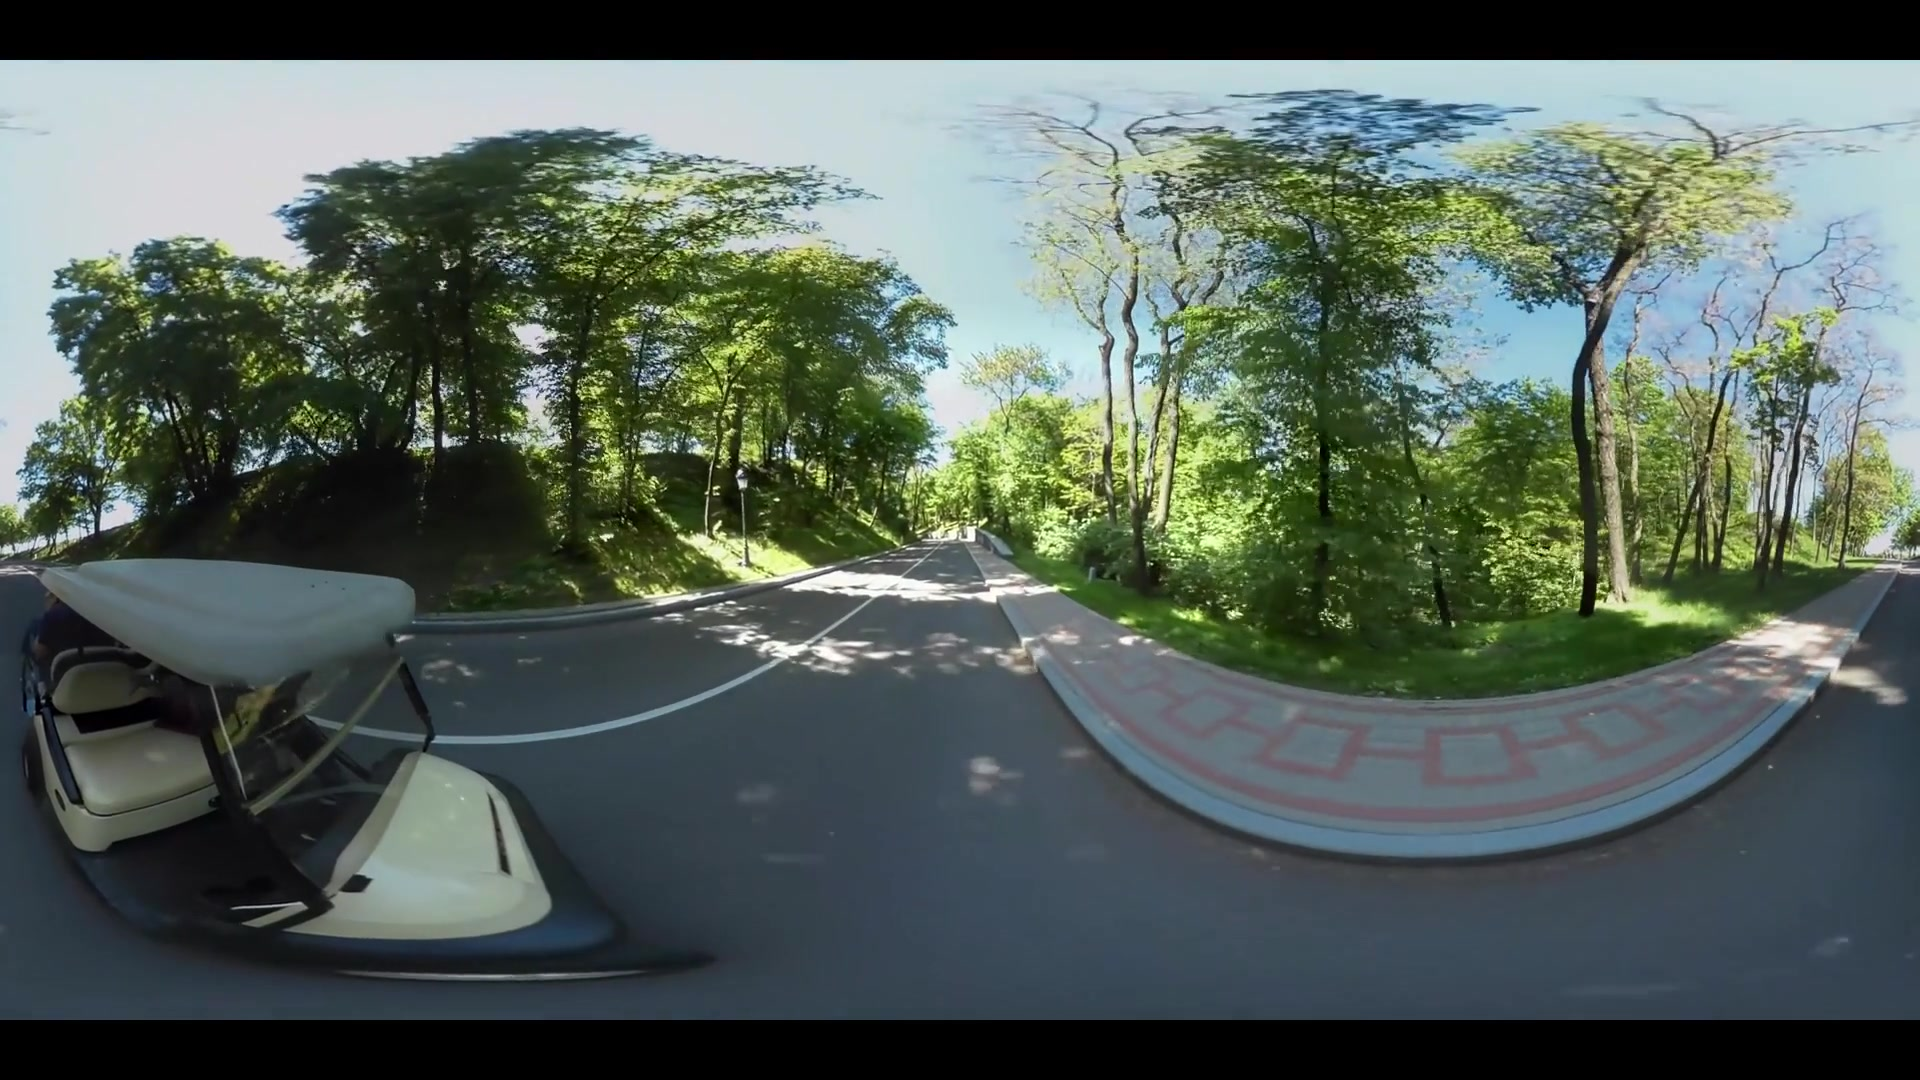 Golf cart moving on road along green field. Panoramic view golf cart driving on road past green golf course 360 degrees. Landscape green golf course 360 video